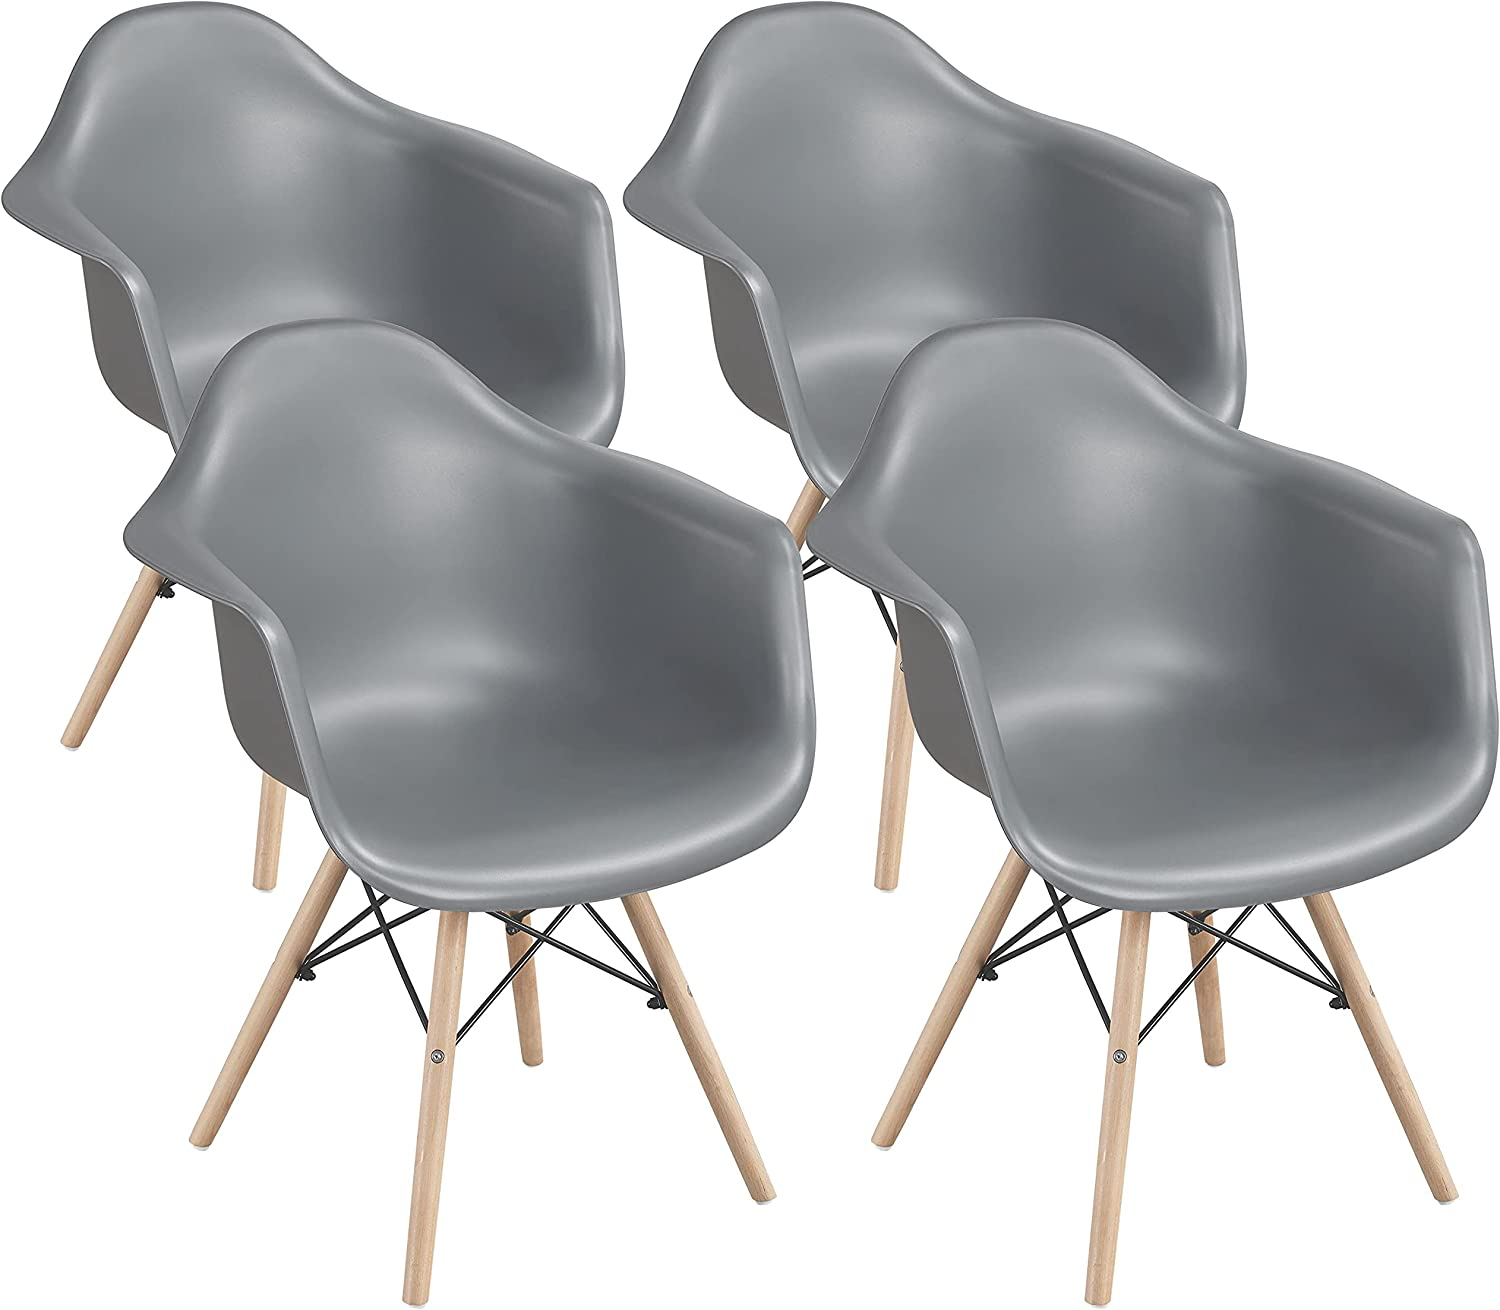 Yaheetech 4pcs Dining Chairs Mid Century Modern Chair with Armrests Backrest DSW Shell Eiffel Armchair with Wooden Legs for Home Kitchen and Restaurants, Gray